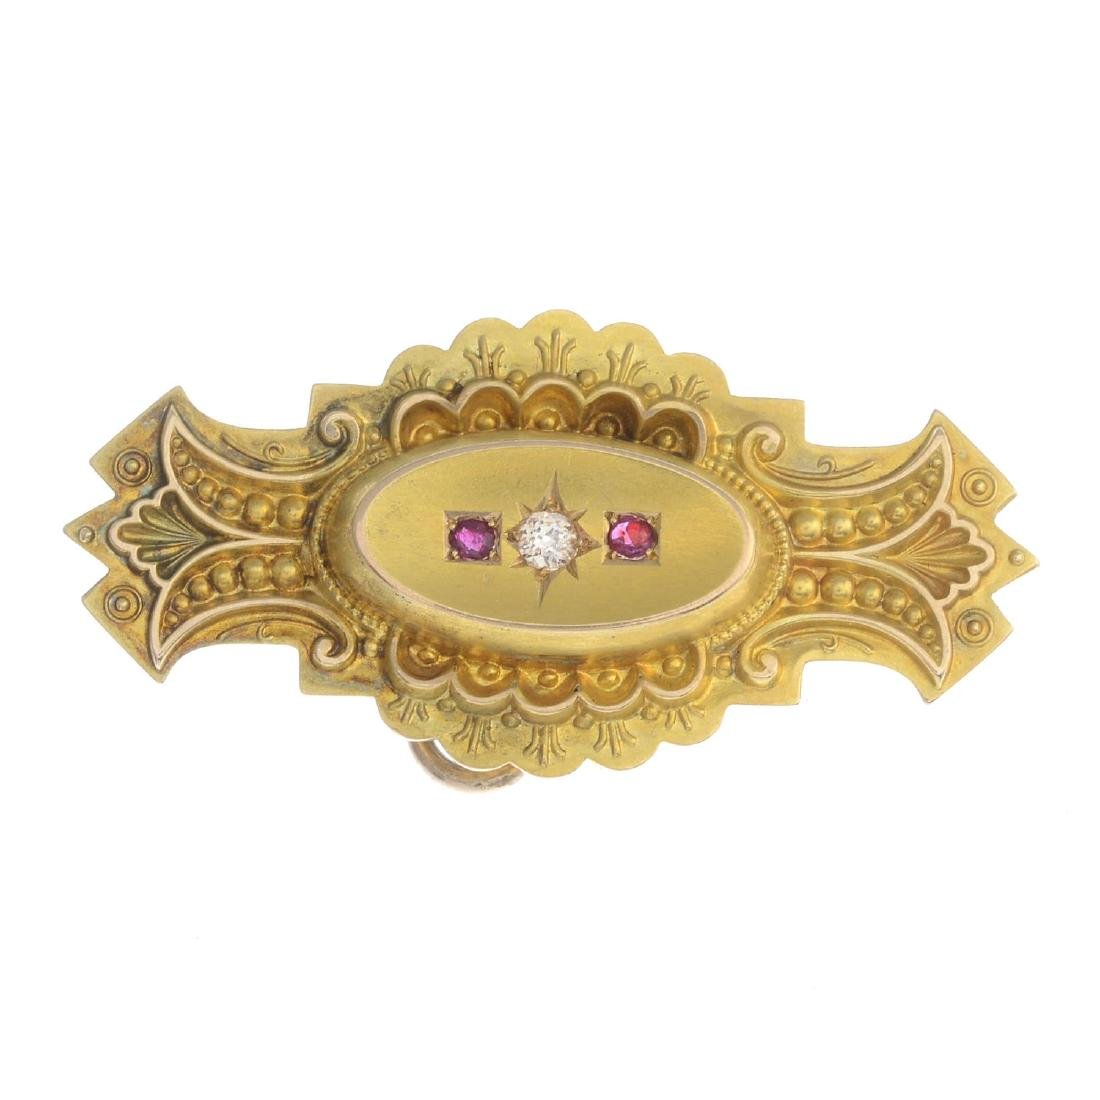 A late Victorian 15ct gold diamond and ruby brooch. The